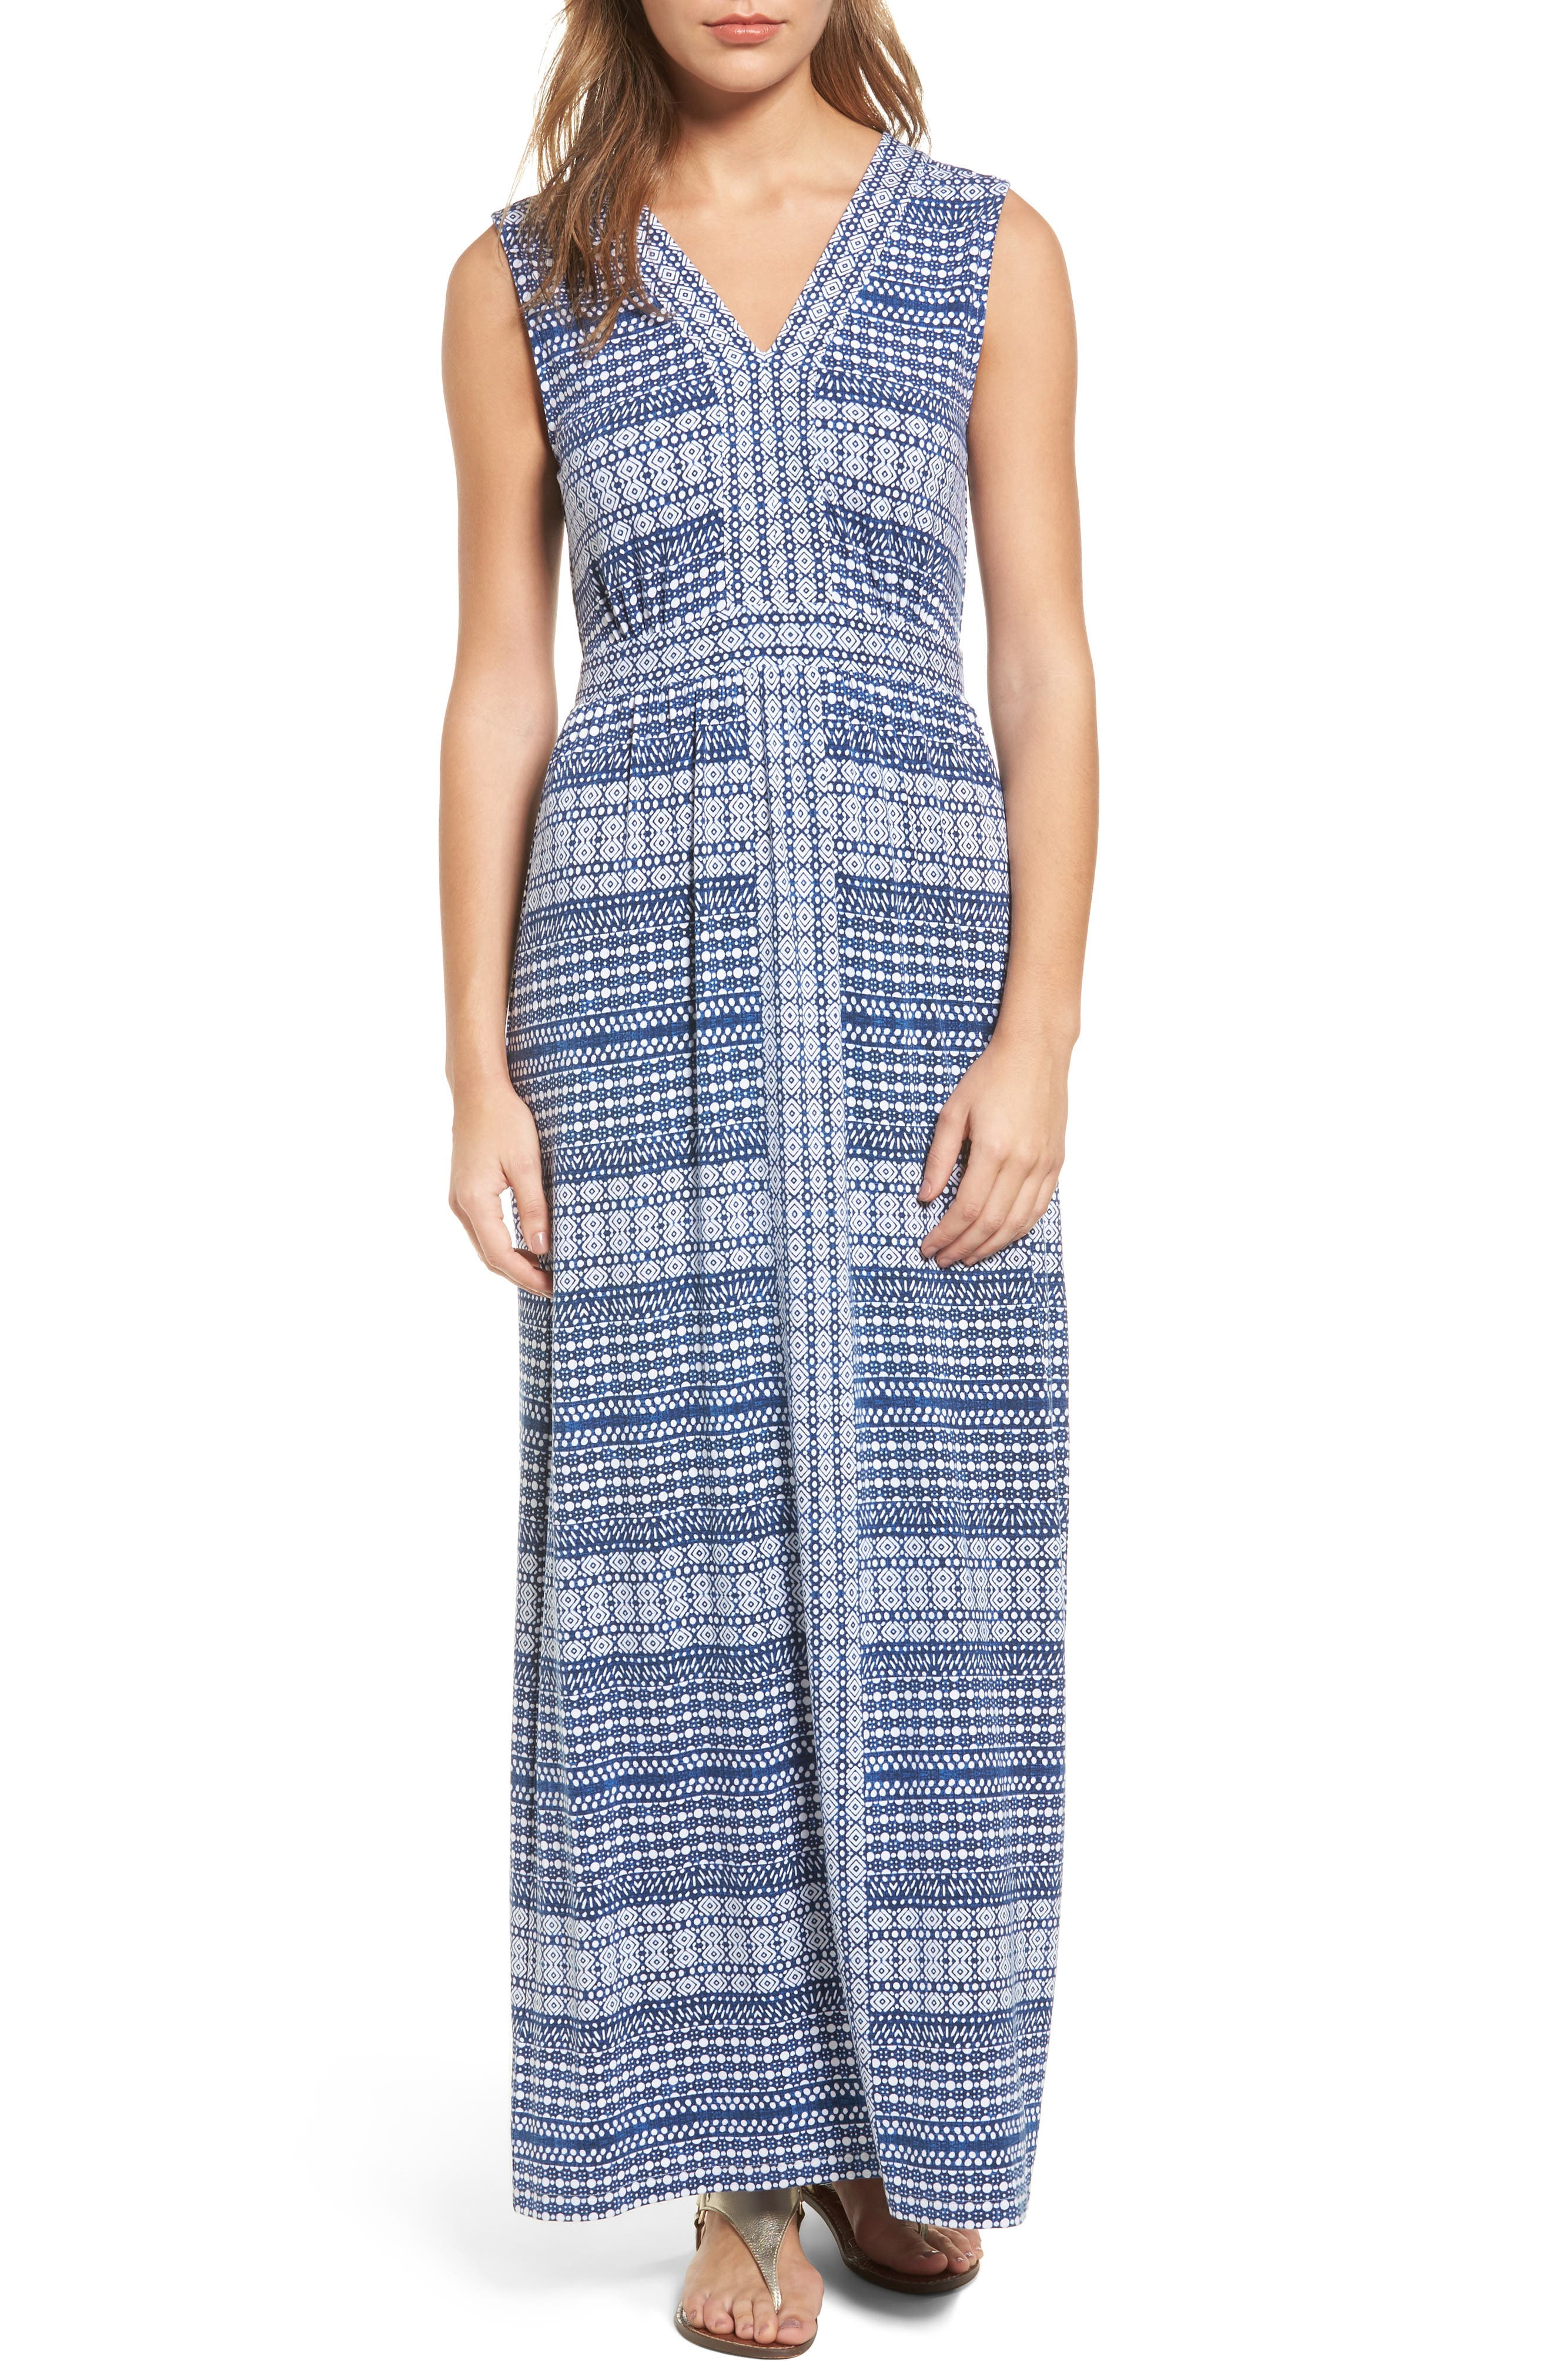 Alternate Image 1 Selected - Tommy Bahama Greek Grid Maxi Dress